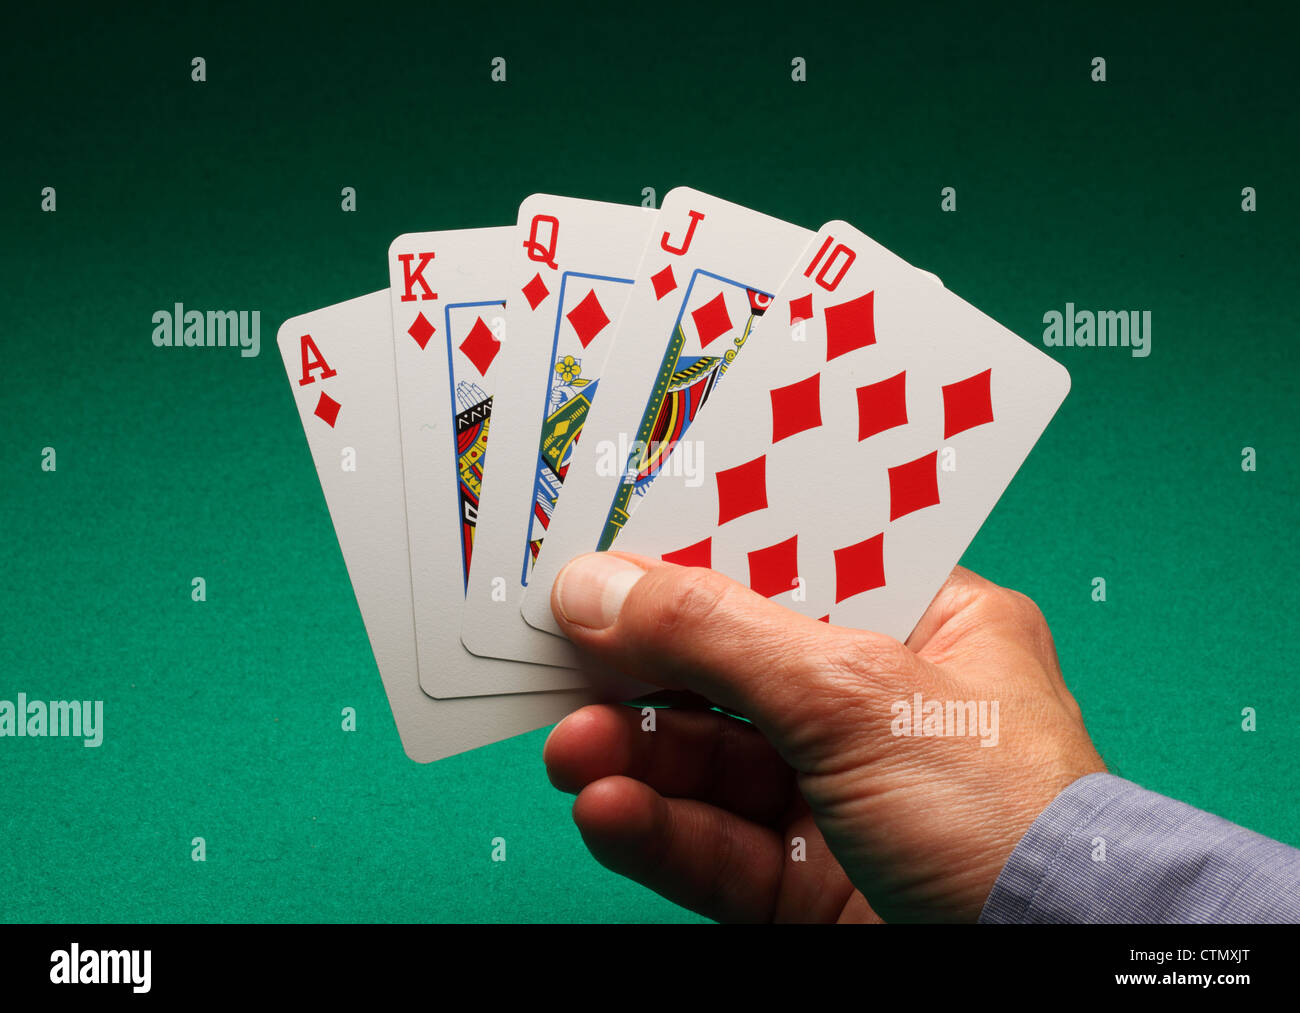 A man's hand holding playing cards on a green table. A Royal Flush of diamonds in the game of Poker - Stock Image